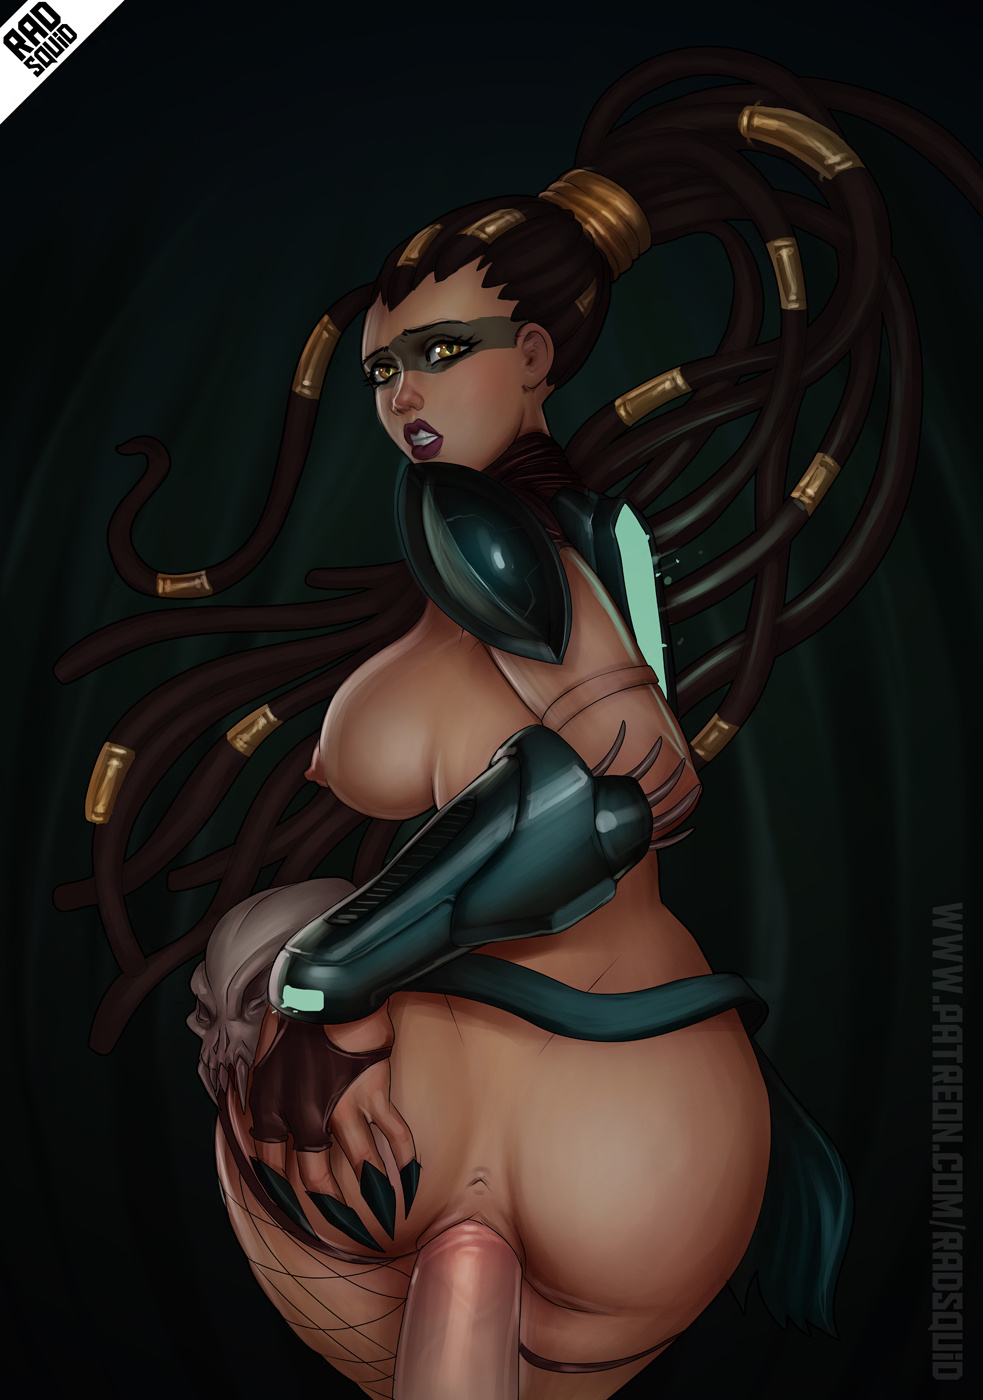 2501331 - League_of_Legends Nidalee the-essential-squid